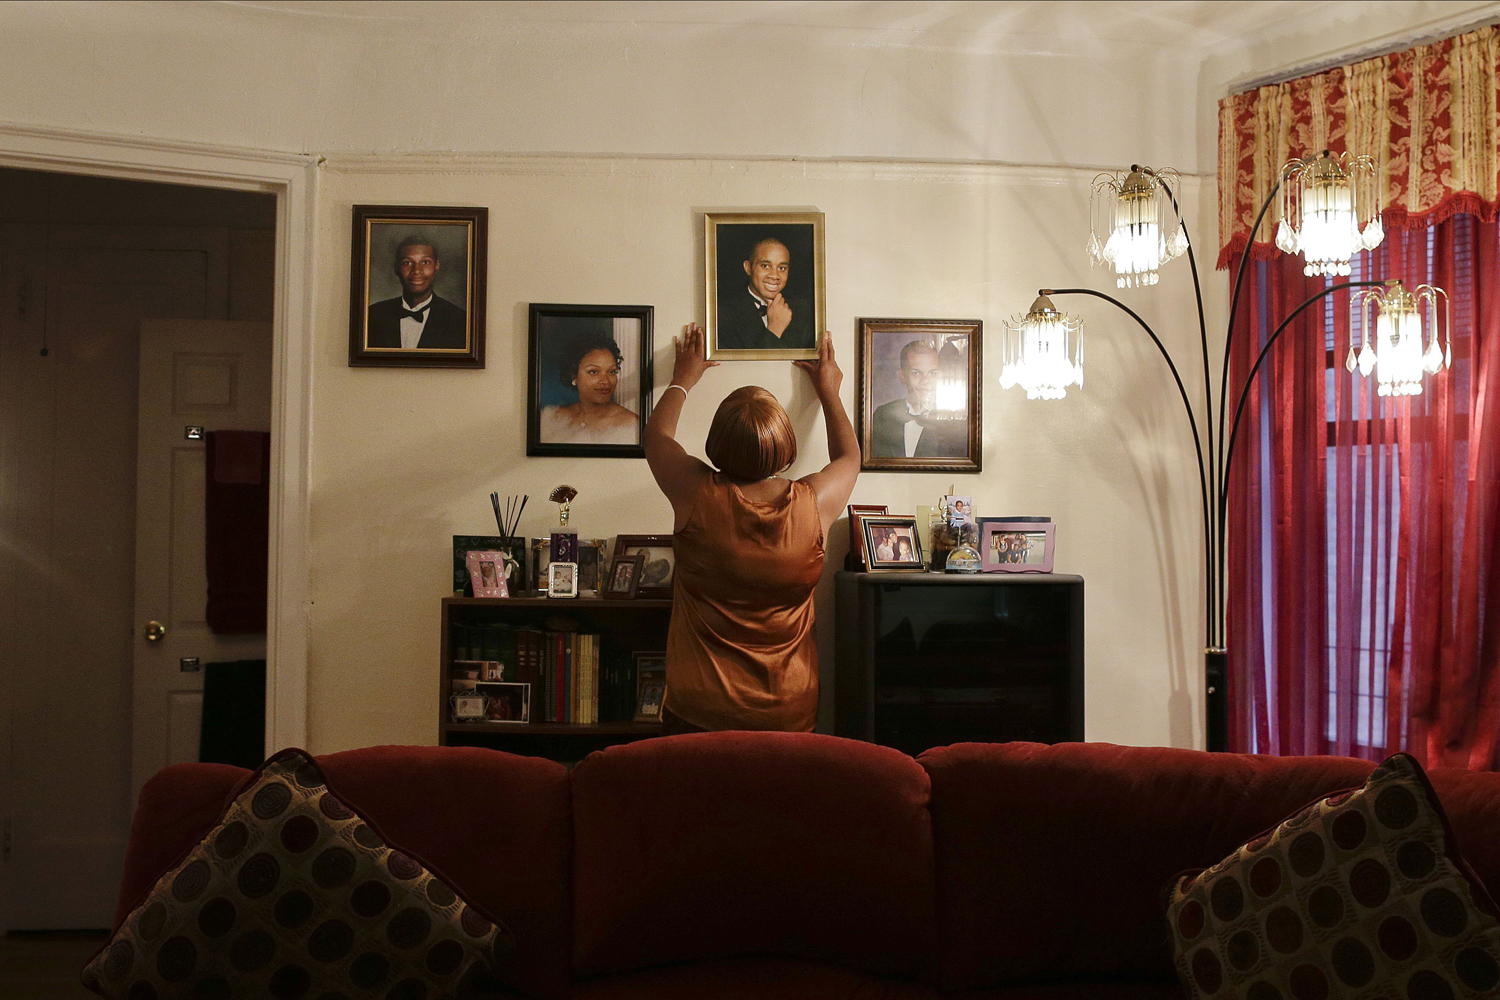 Jun. 25, 2014. Tracie Morales places a photo of her son, Jamal Polo, back up on a wall at her home, in New York. Polo committed suicide in May 2012 while jailed on sexual misconduct charges.